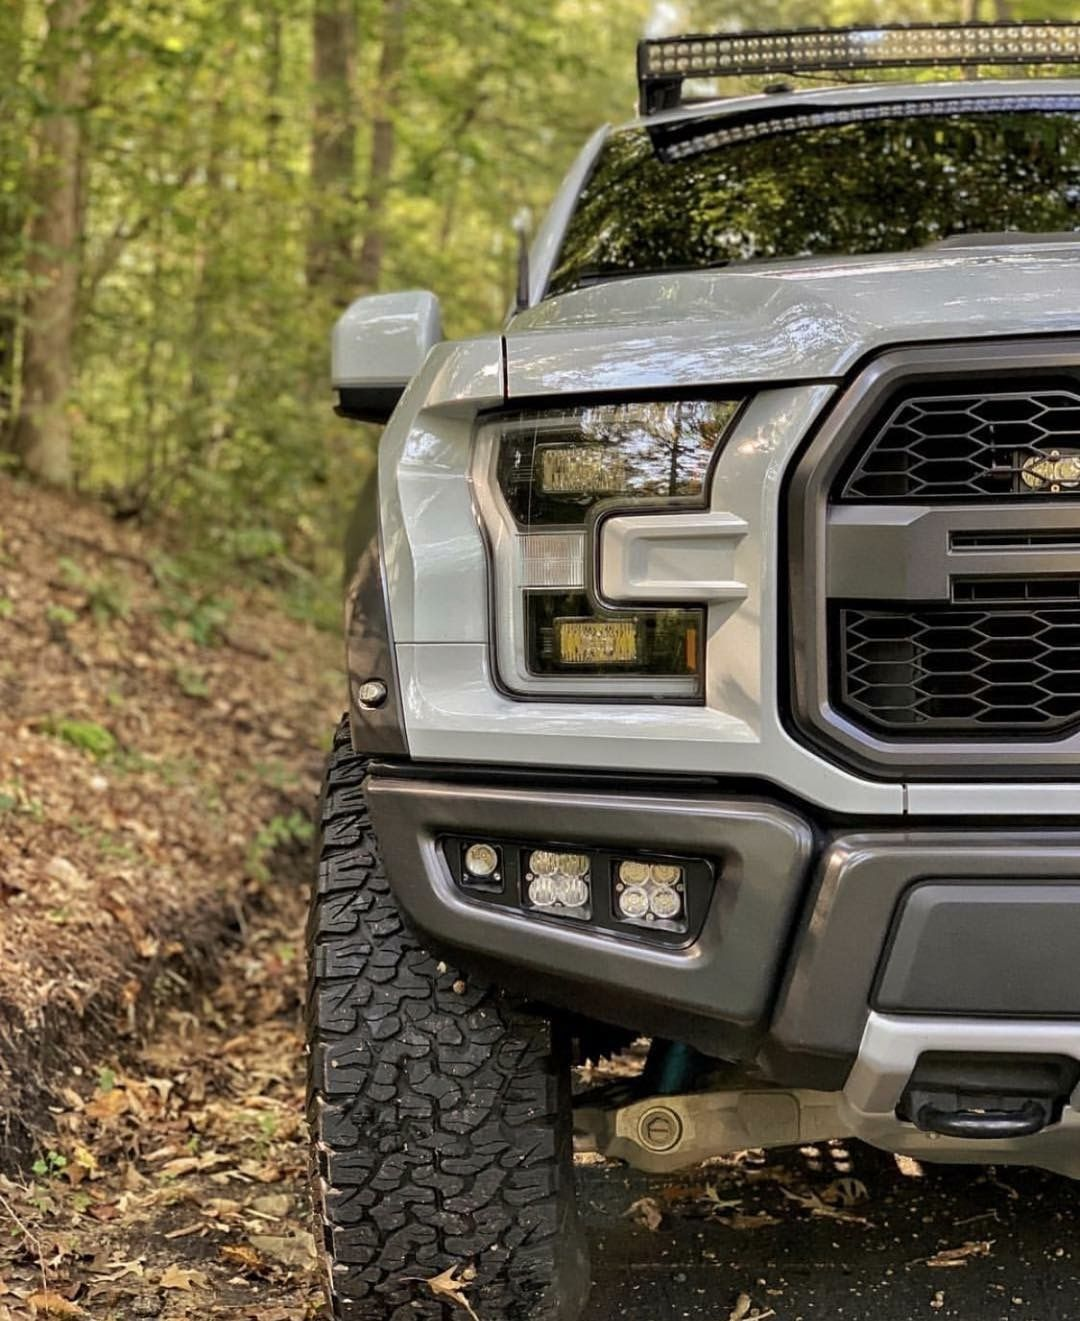 Pin By Peppe Arg On Raptor Ford Trucks F150 Ford Raptor Ford Ranger Ford raptor iphone x wallpaper